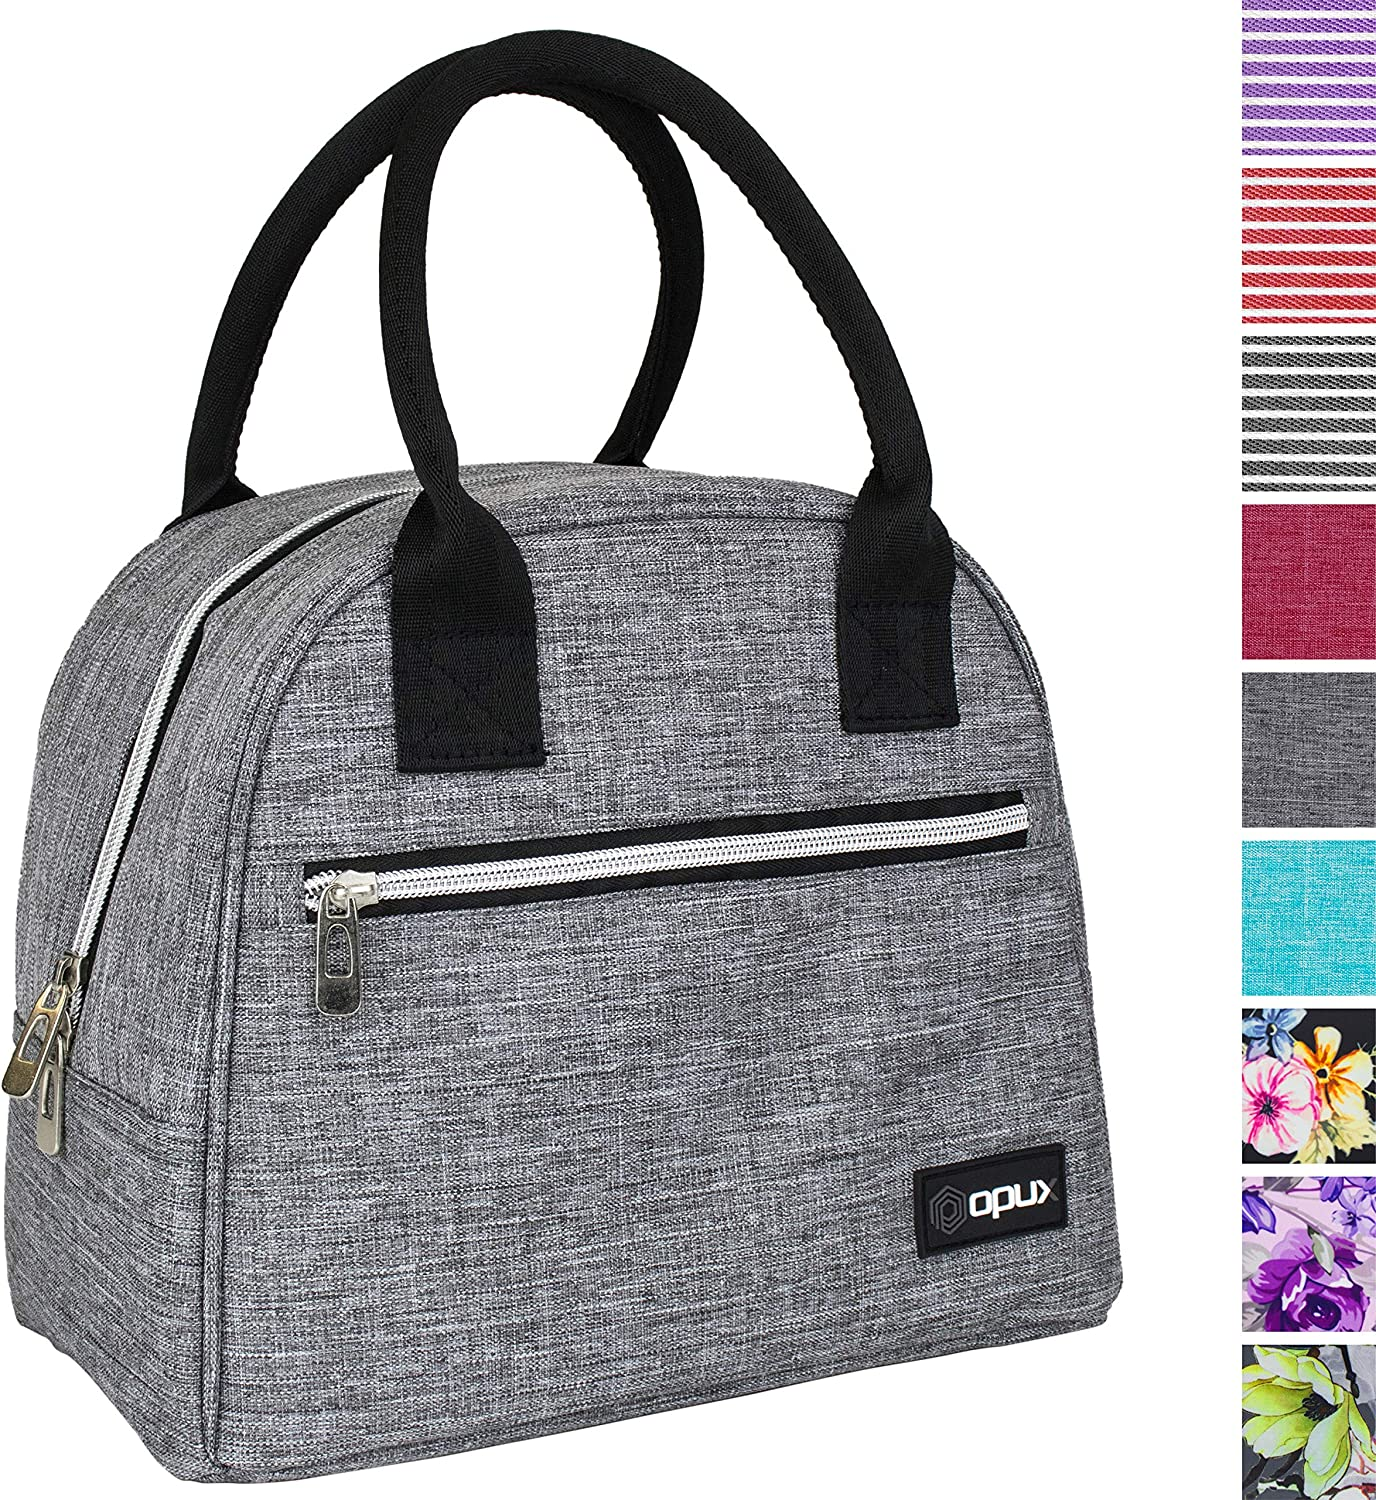 OPUX Lunch Box for Women | Insulated Lunch Bags for Women, Girls, Teens | Cute Lunch Tote Purse Cooler for School, Work, Office, Adult | Fits 12 Cans (Heather Gray)